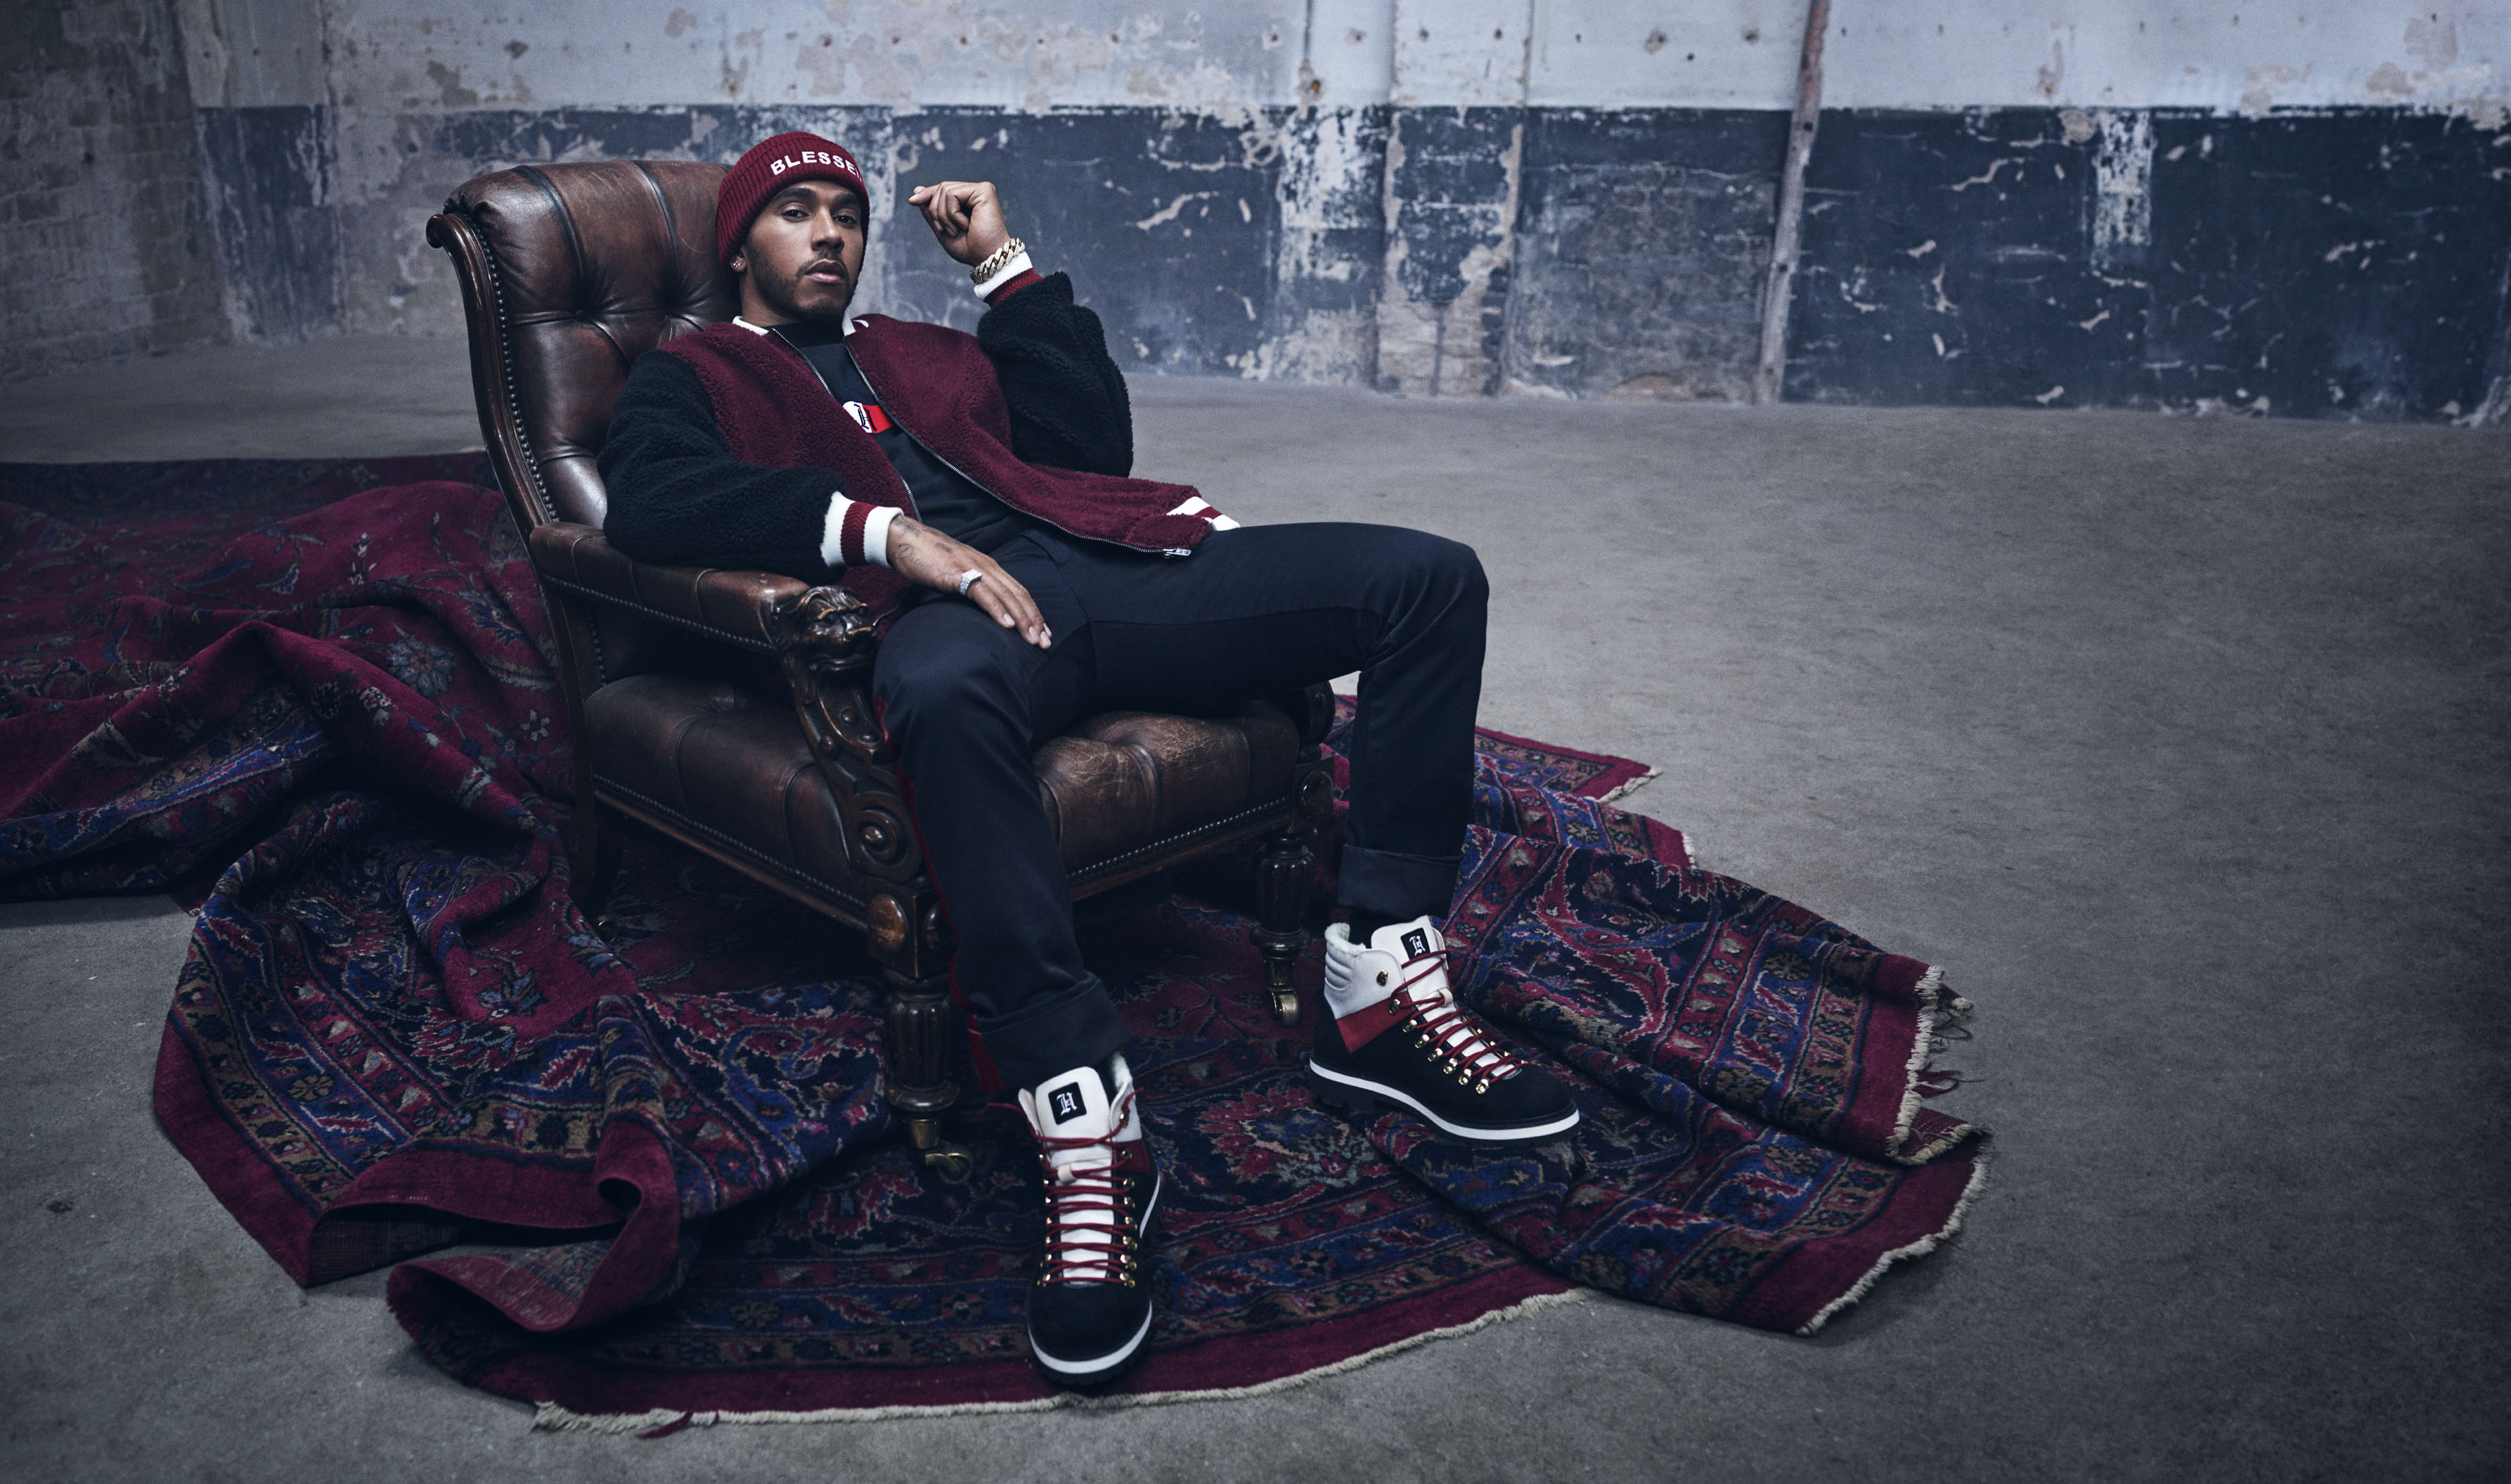 lewis hamilton and tommy hilfiger good collaboration